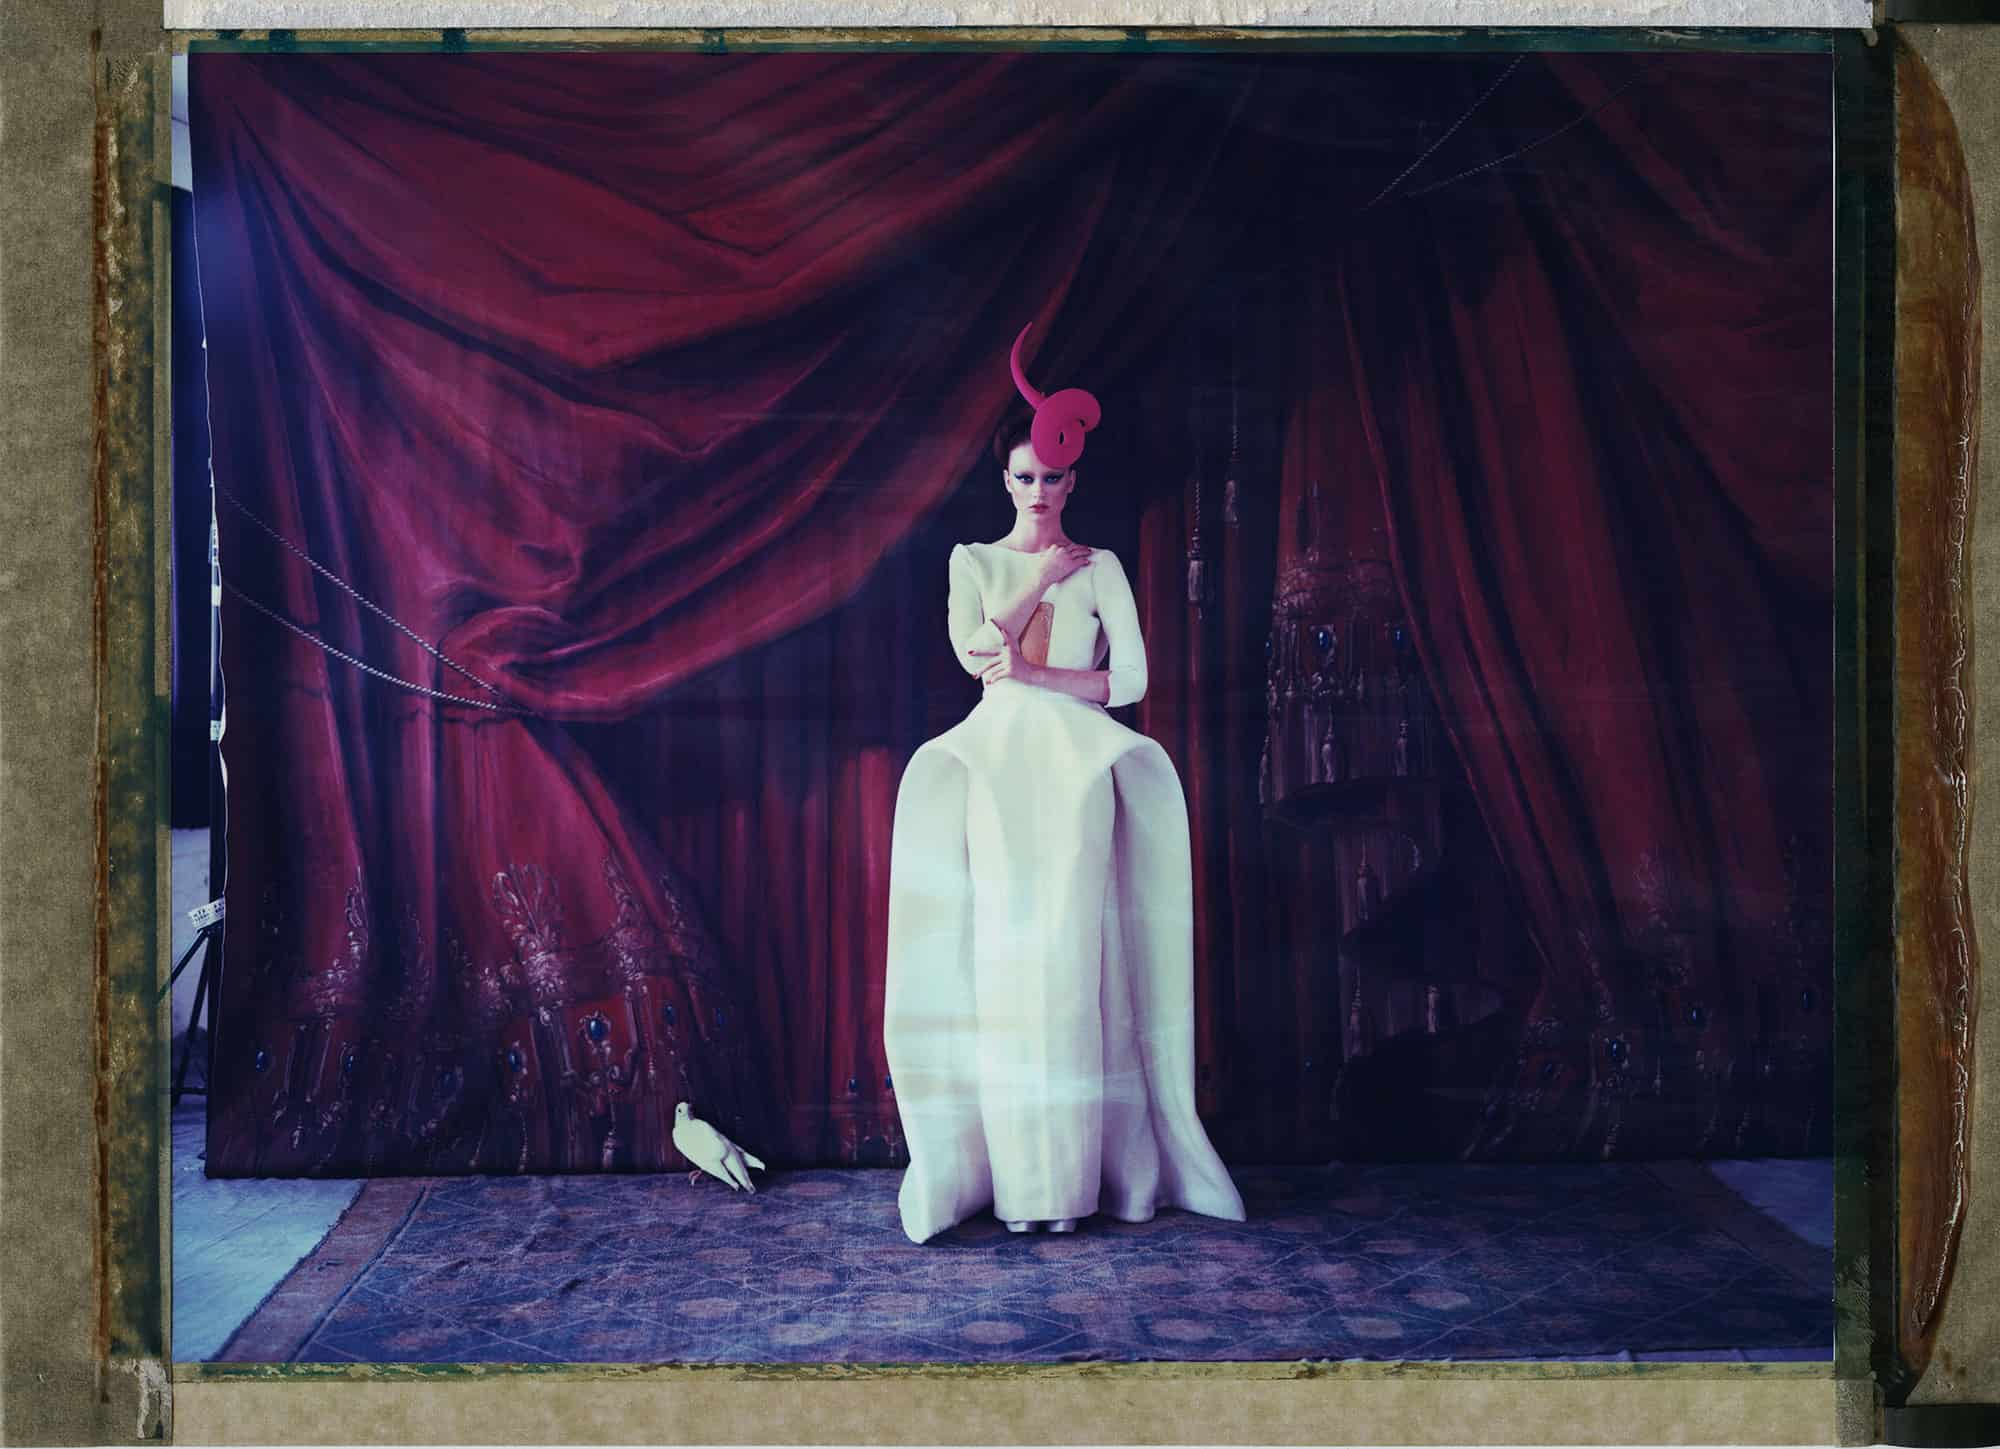 Fine art color photography of a fashion model wearing haute couture by Stephane and hat by Philip Treacy, with dove. Hand-painted backdrop of opera curtain.